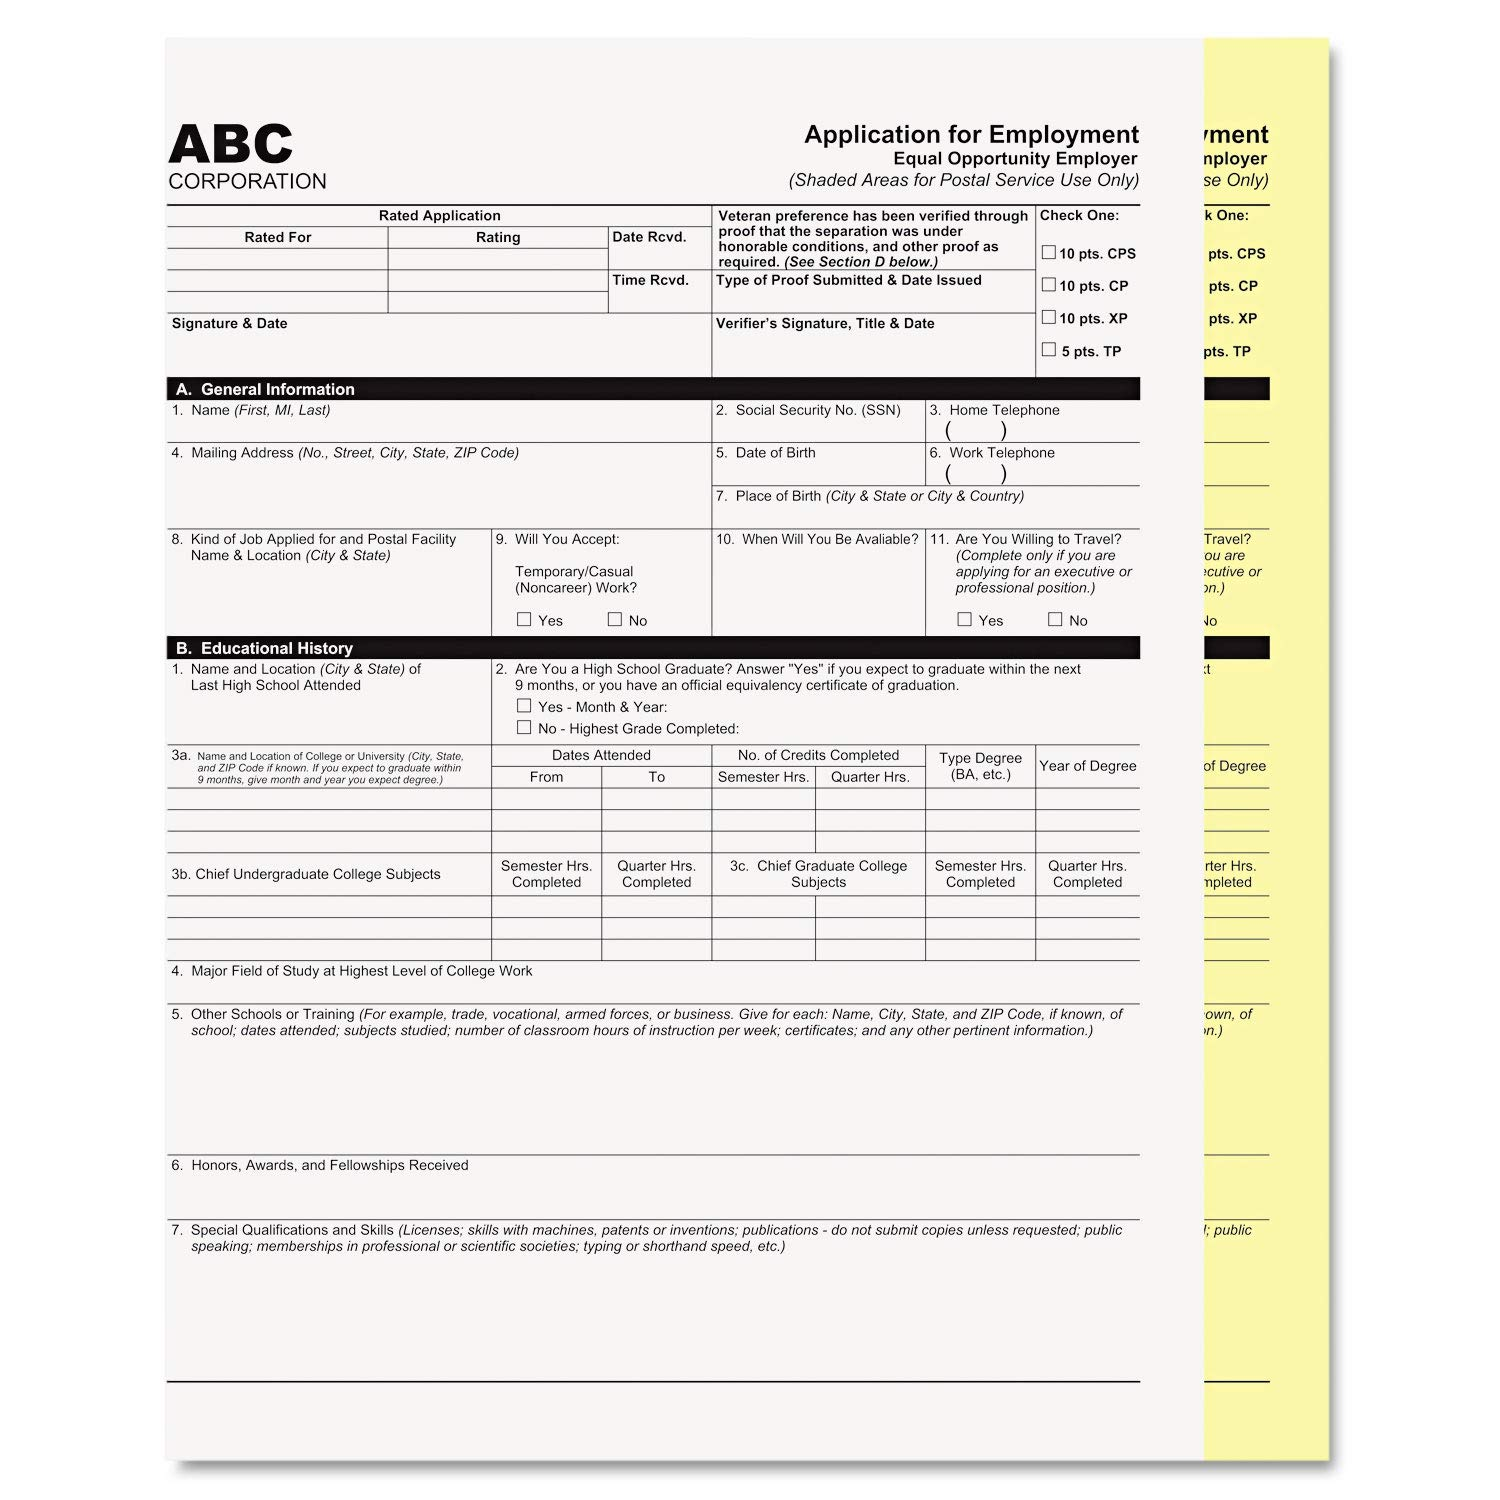 PM Company Digital Carbonless Paper, 8-1/2 x 11, Two-Part Collated, White/Canary, 2500 Sets - 59101 by PM Company (Image #1)